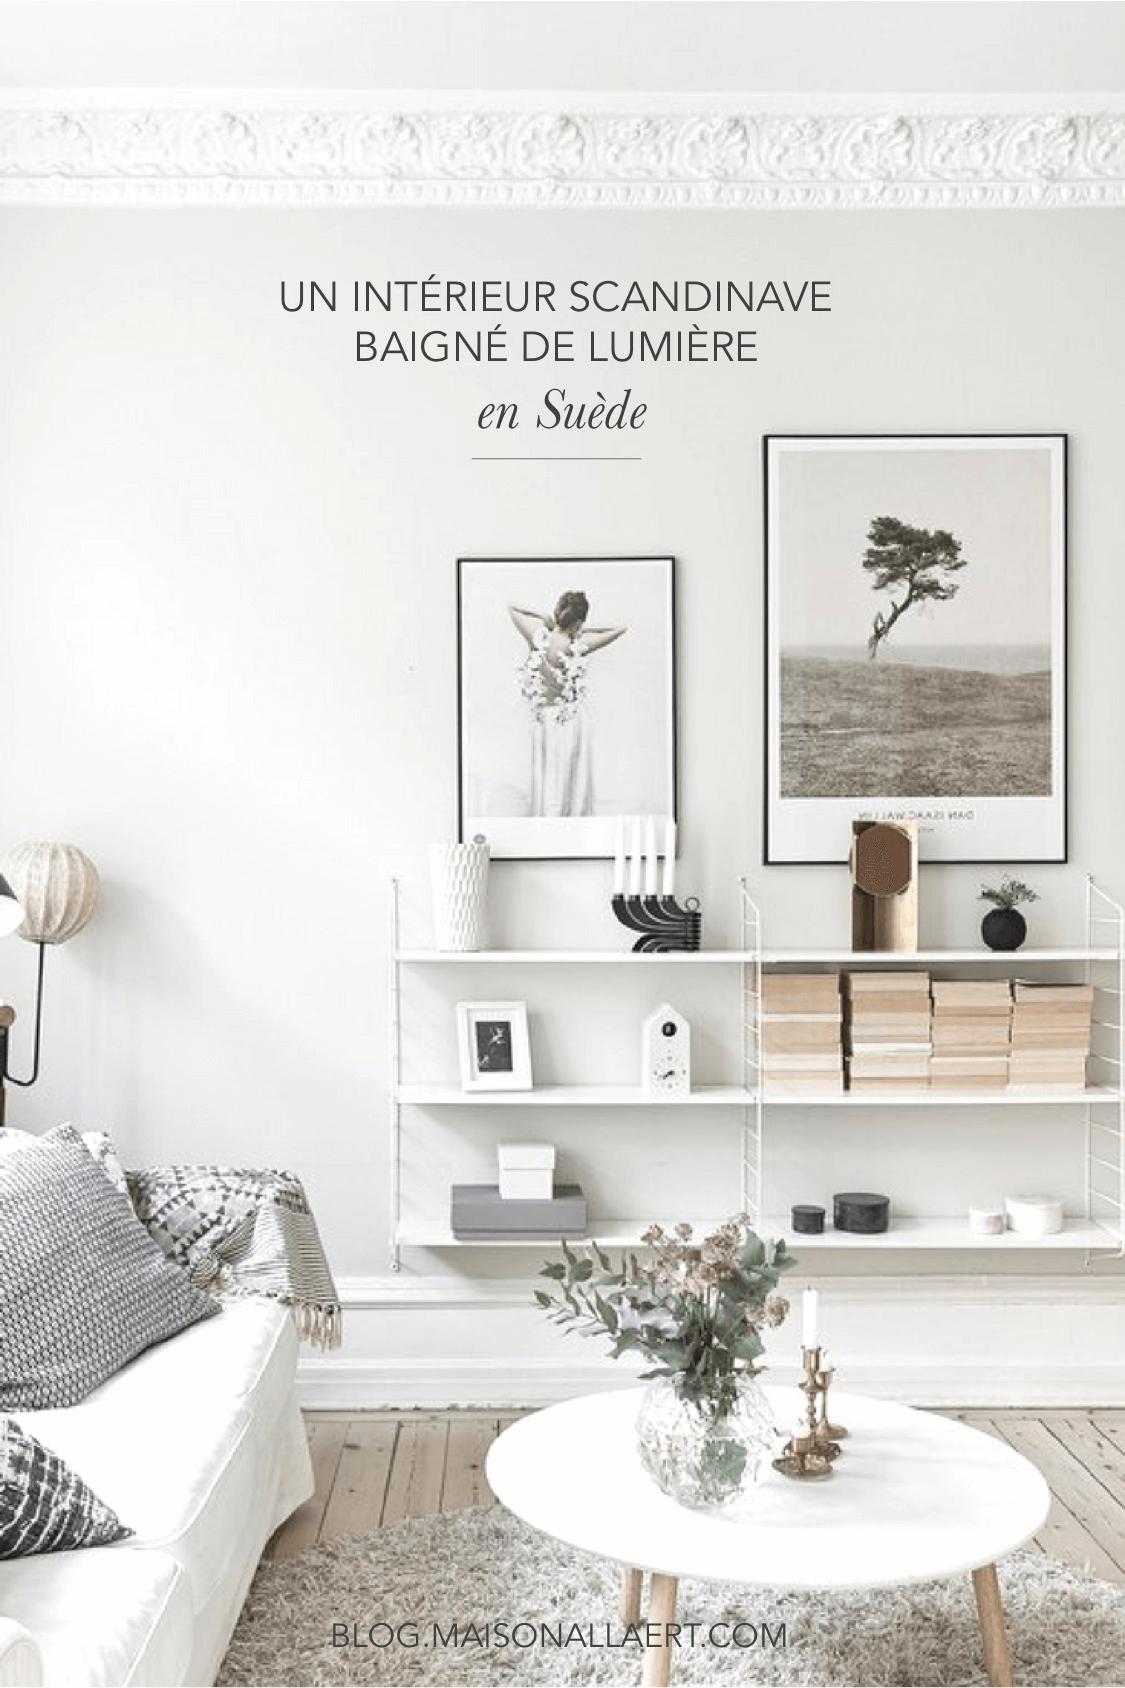 un bel appartement scandinave baign de lumi re en su de le blog d co de l 39 atelier maison allaert. Black Bedroom Furniture Sets. Home Design Ideas